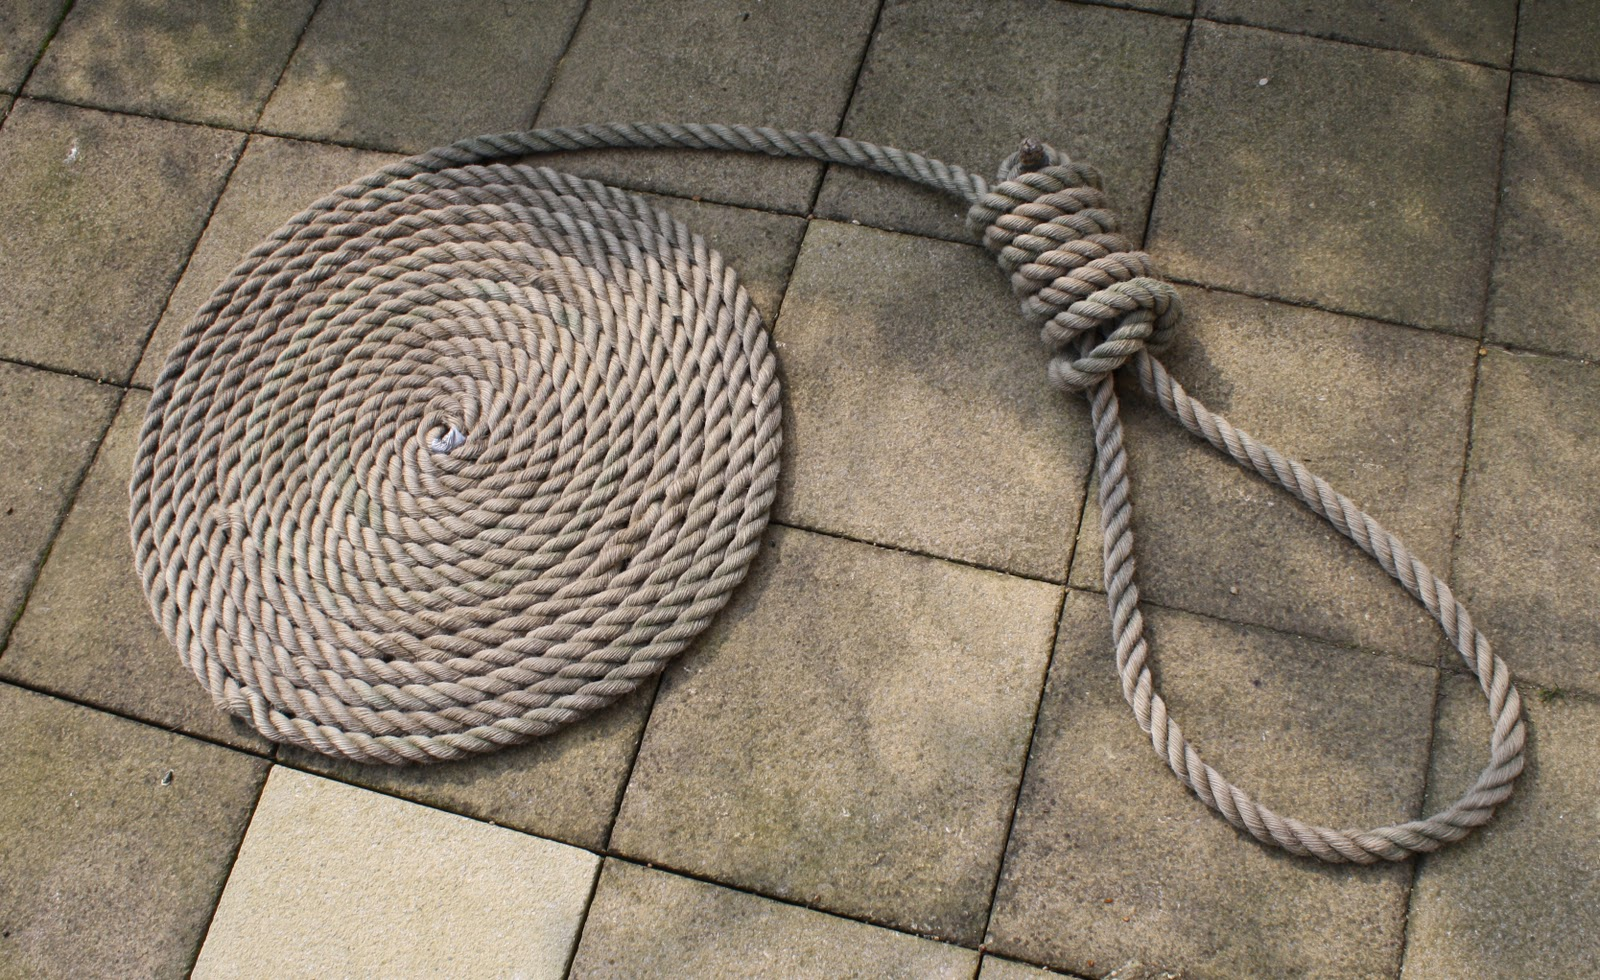 Coiled up rope with hangmans noose